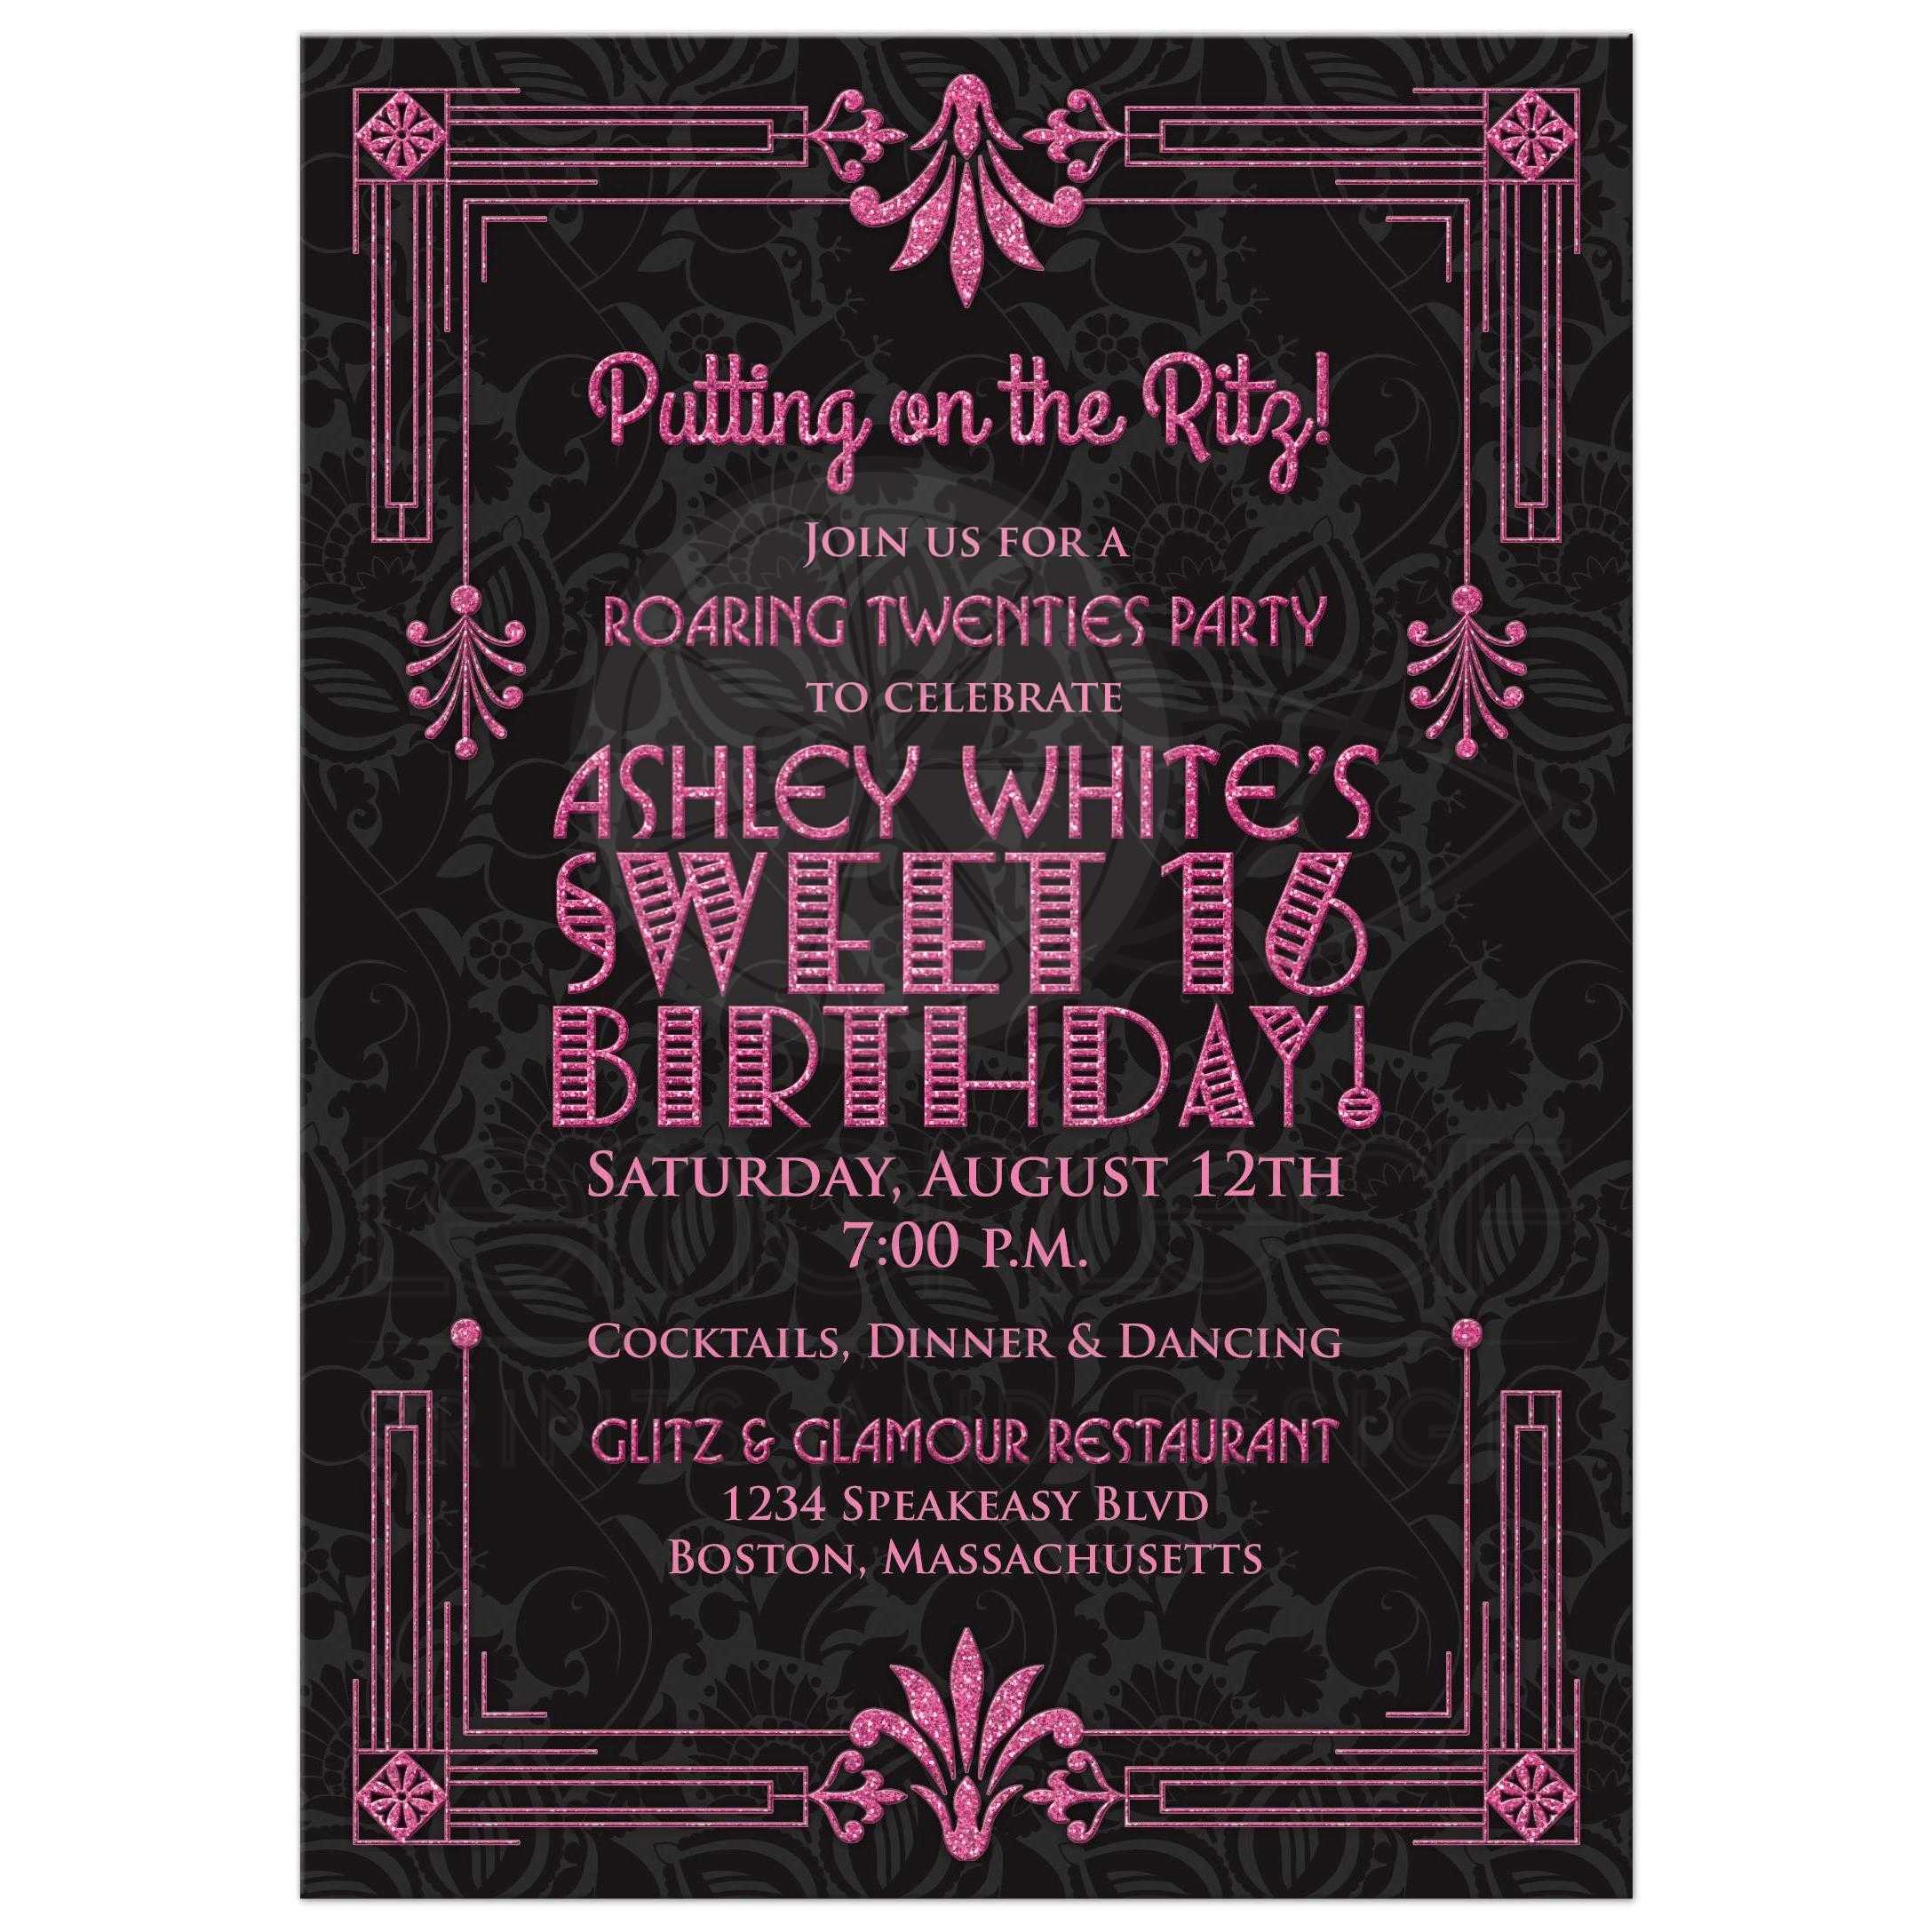 Sweet 16 Birthday Invitation Roaring 20s Art Deco Black Pink